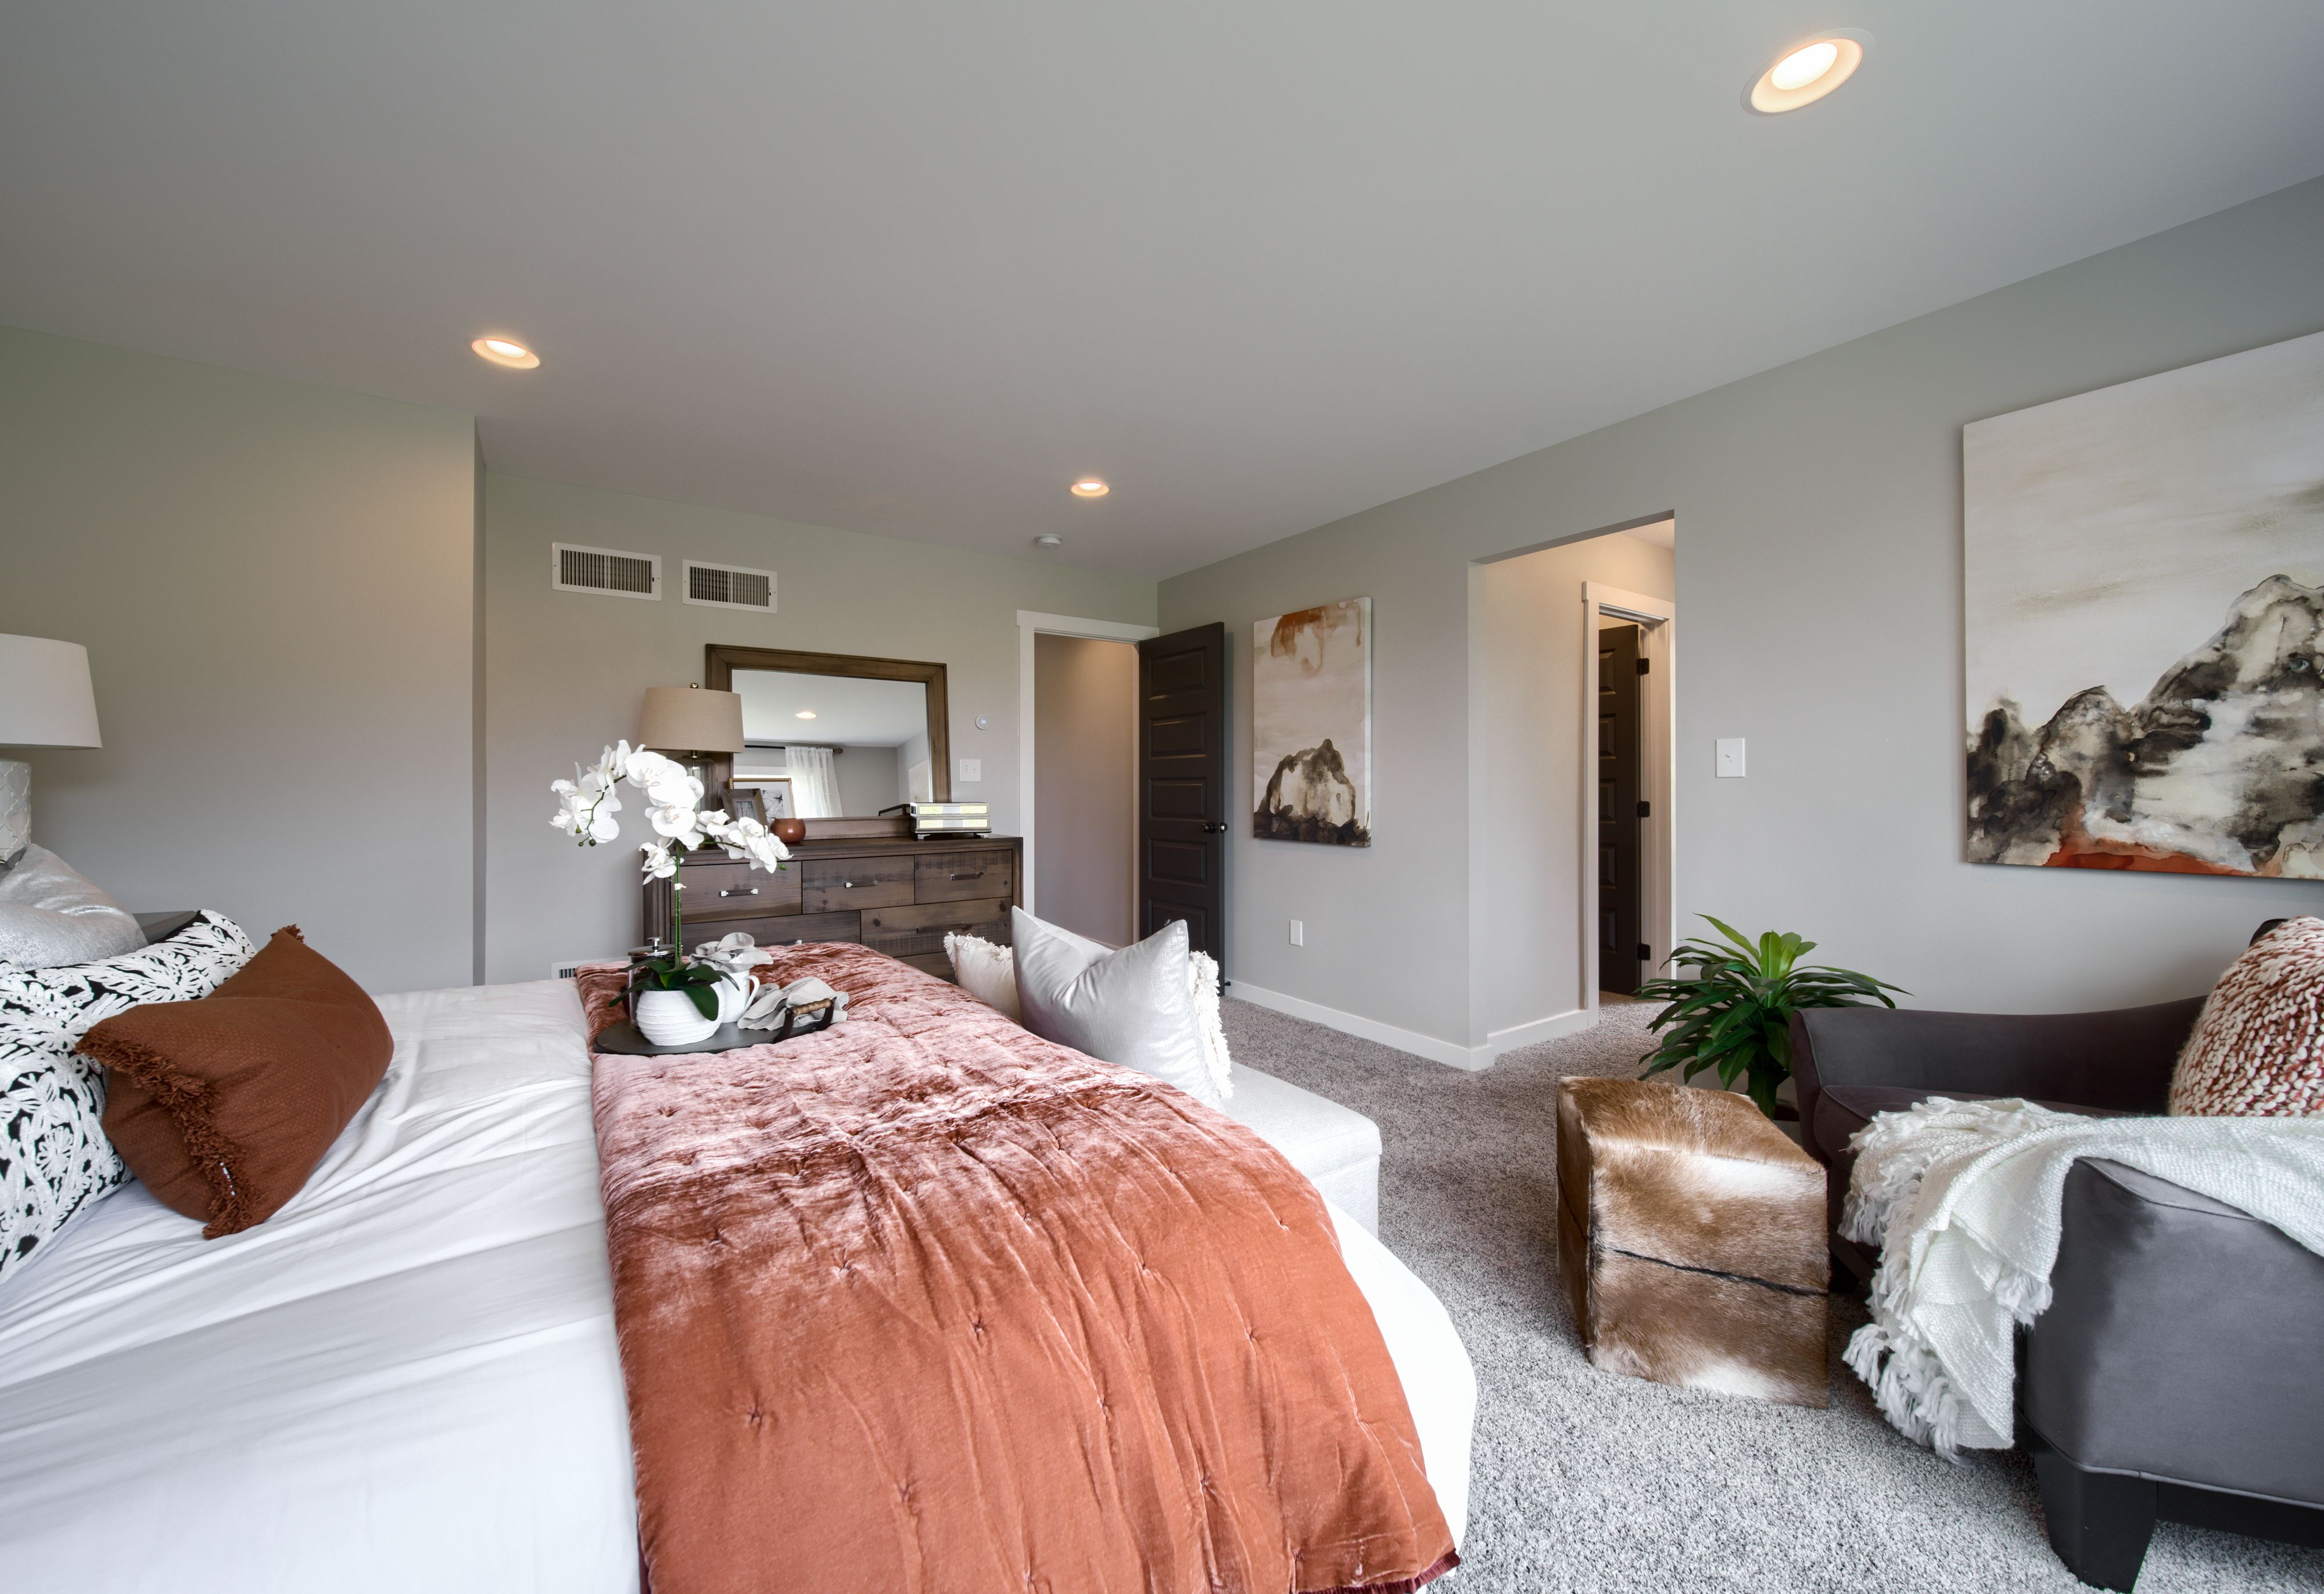 Bedroom featured in the Lachlan Heritage By Keystone Custom Homes in Philadelphia, PA